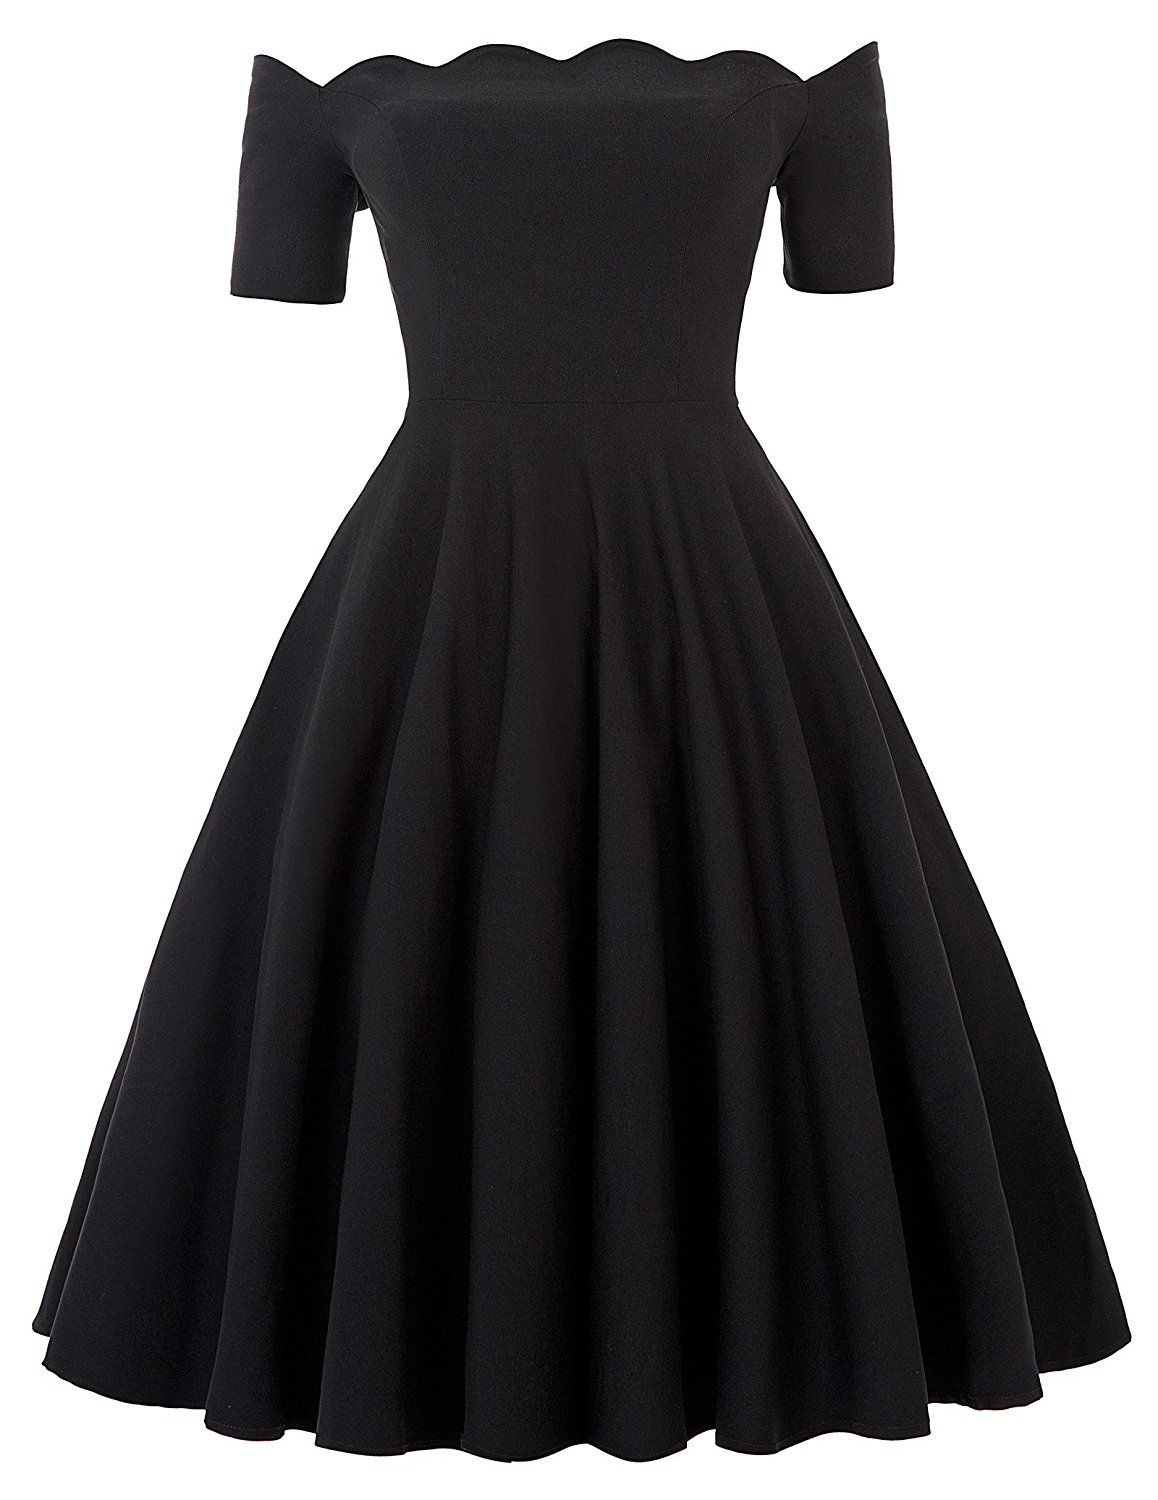 Belle Poque Womens Off Shoulder Swing Dress Party Picnic Dress at ...